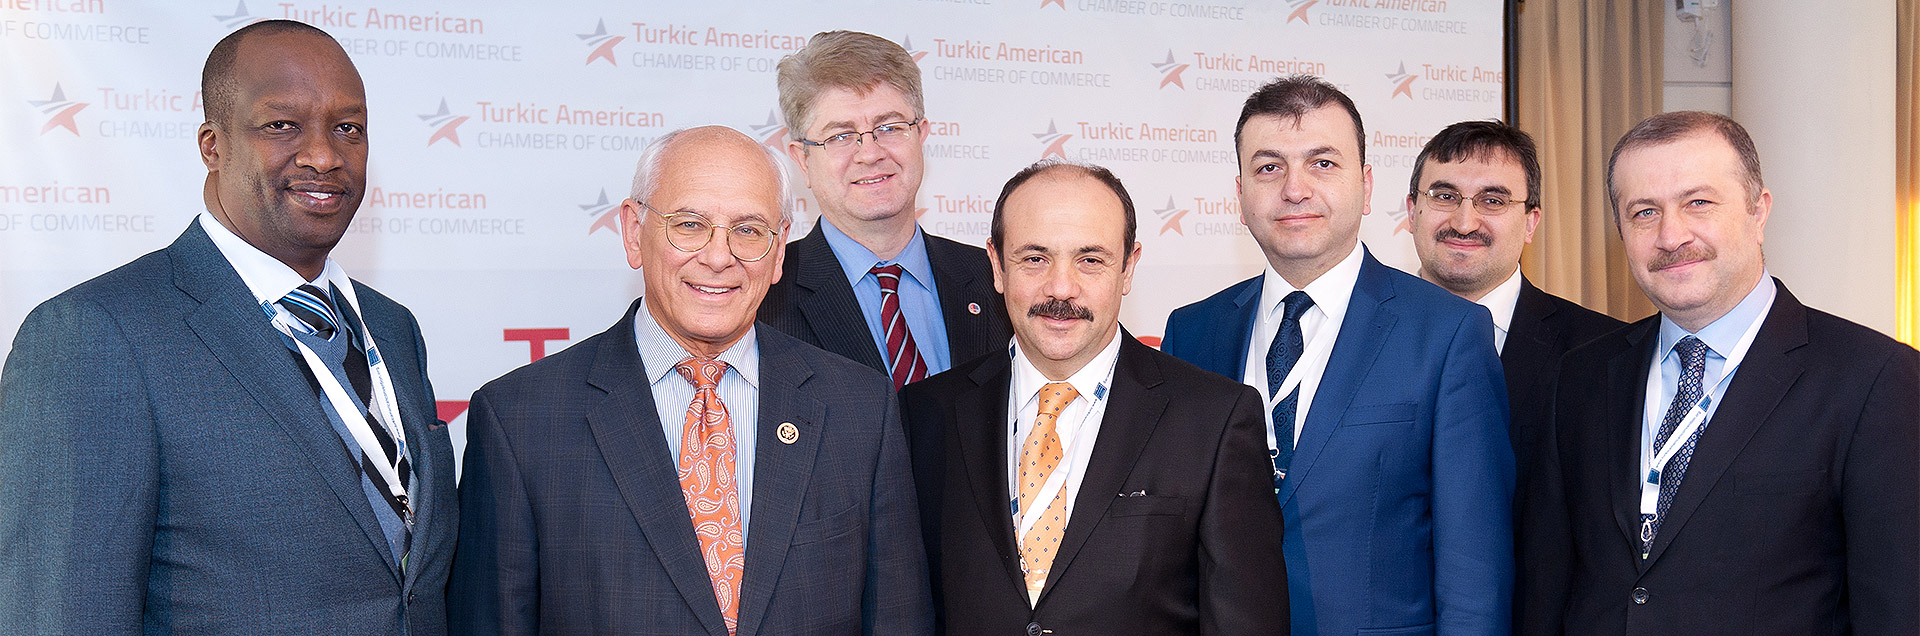 Annual Turkic American Convention